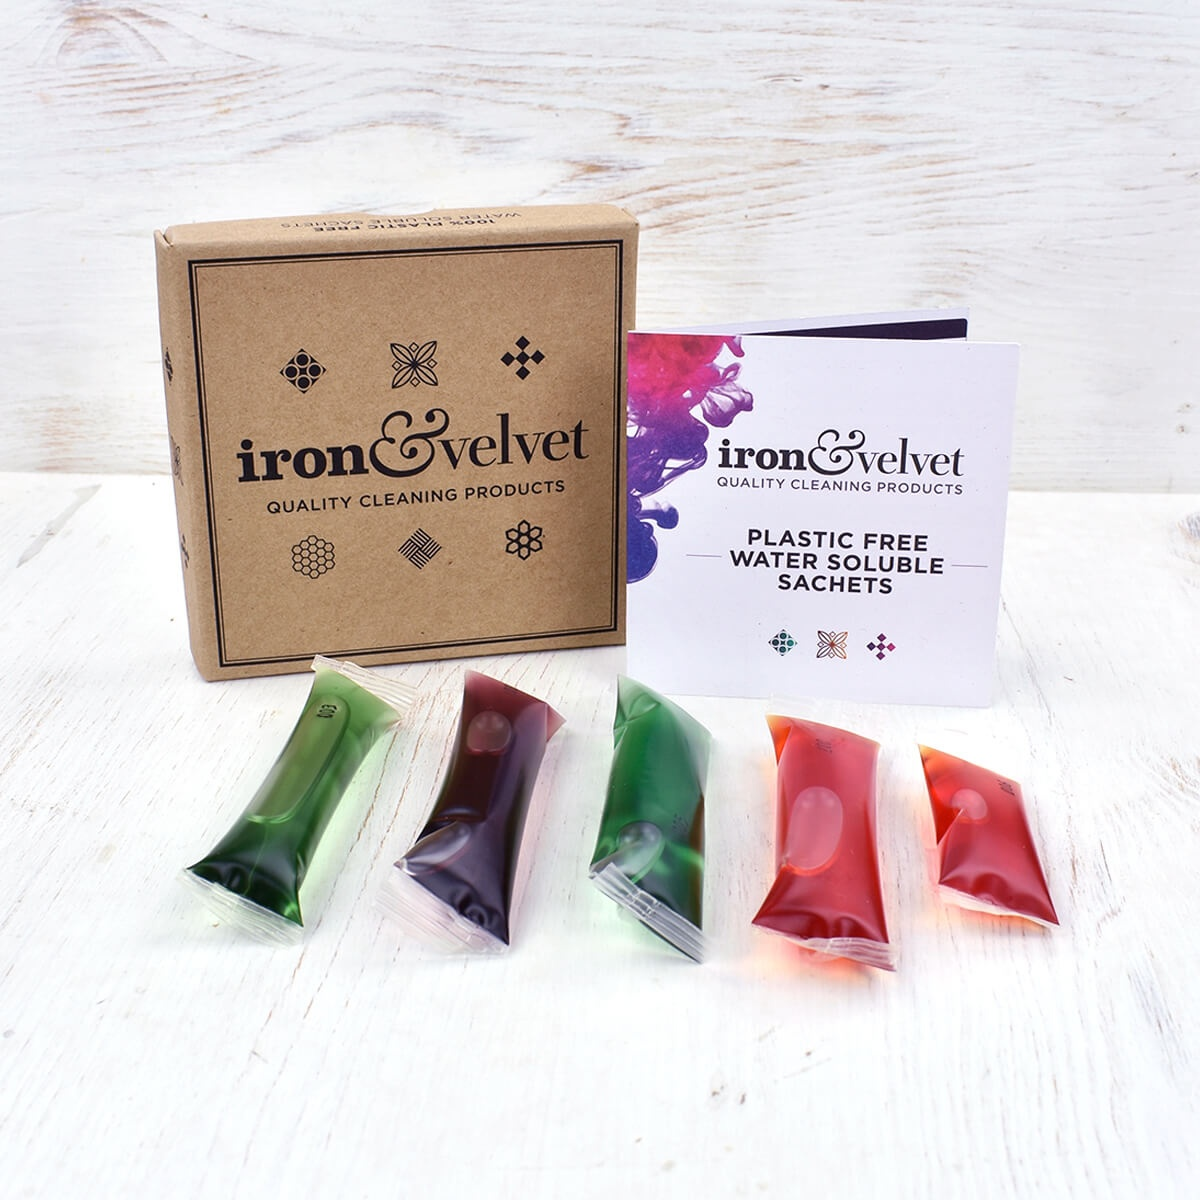 plastic free cleaning sachet box 1 iron velvet